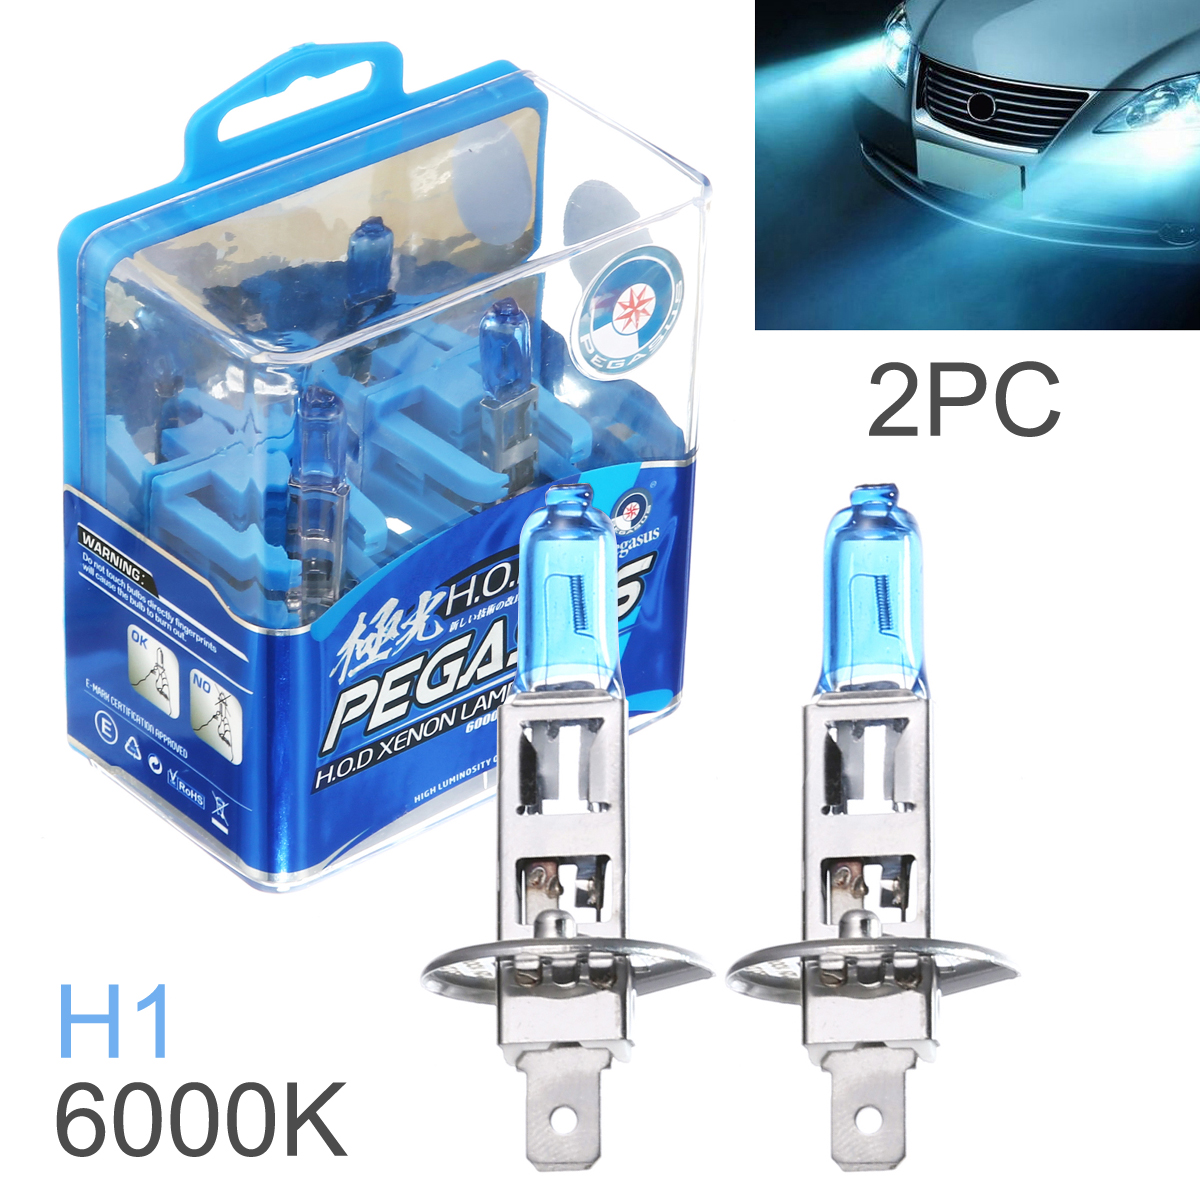 2 Pcs Universal H1 H3 100W 6000K White Light Super Bright Car HOD Halogen Lamp Auto Front Headlight Fog Bulb Fit For Cars